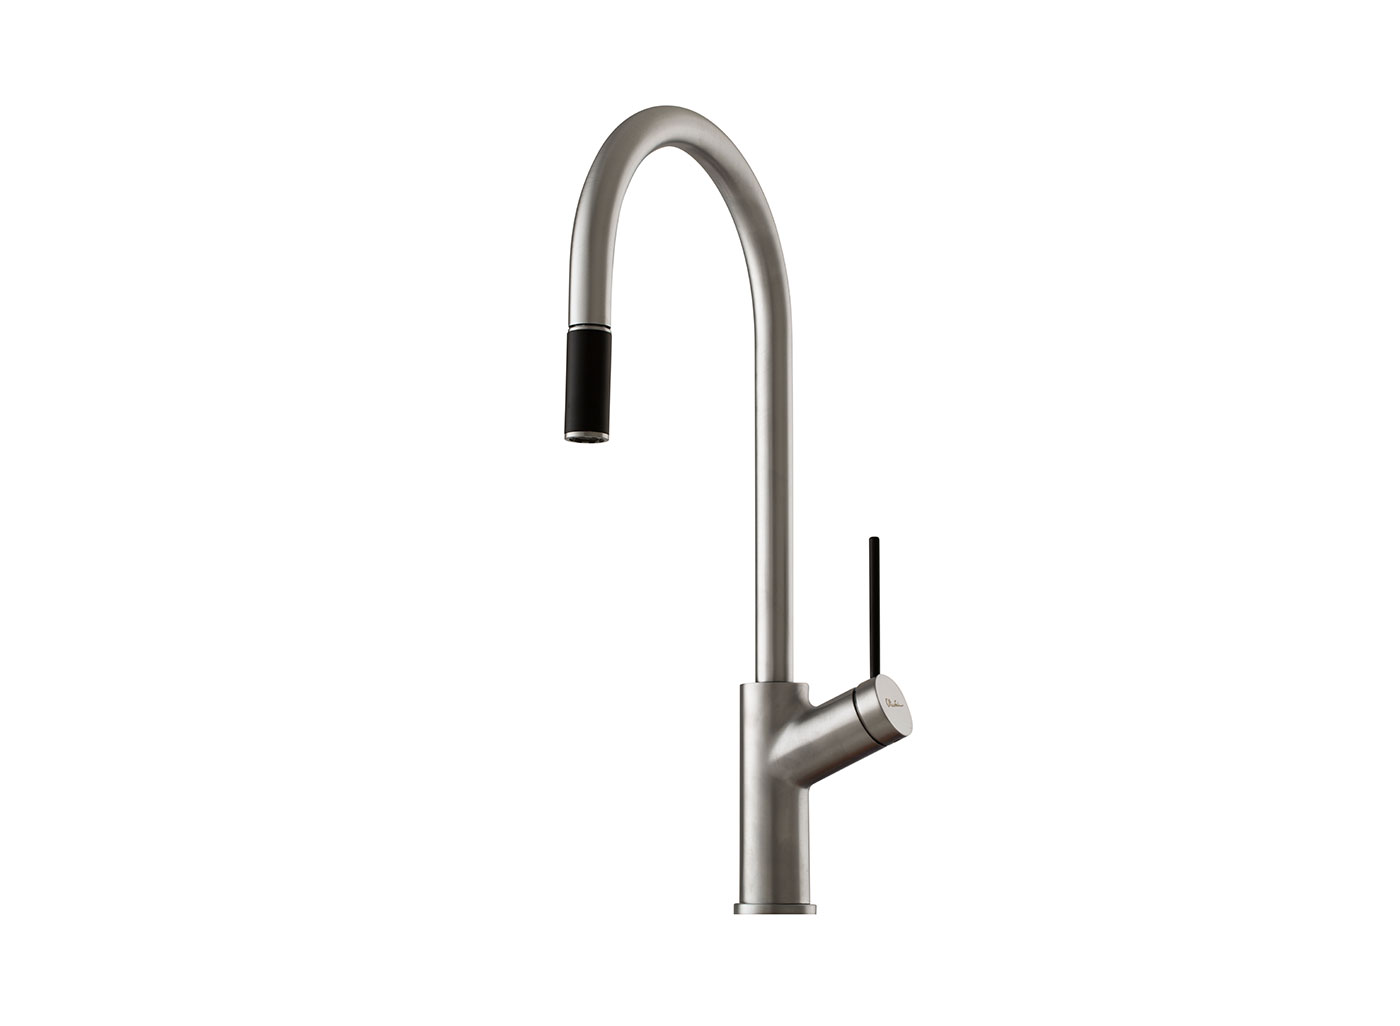 The Vilo sink mixer range by Oliveri - High in design. High in quality. Made in Italy for the Australian high life.